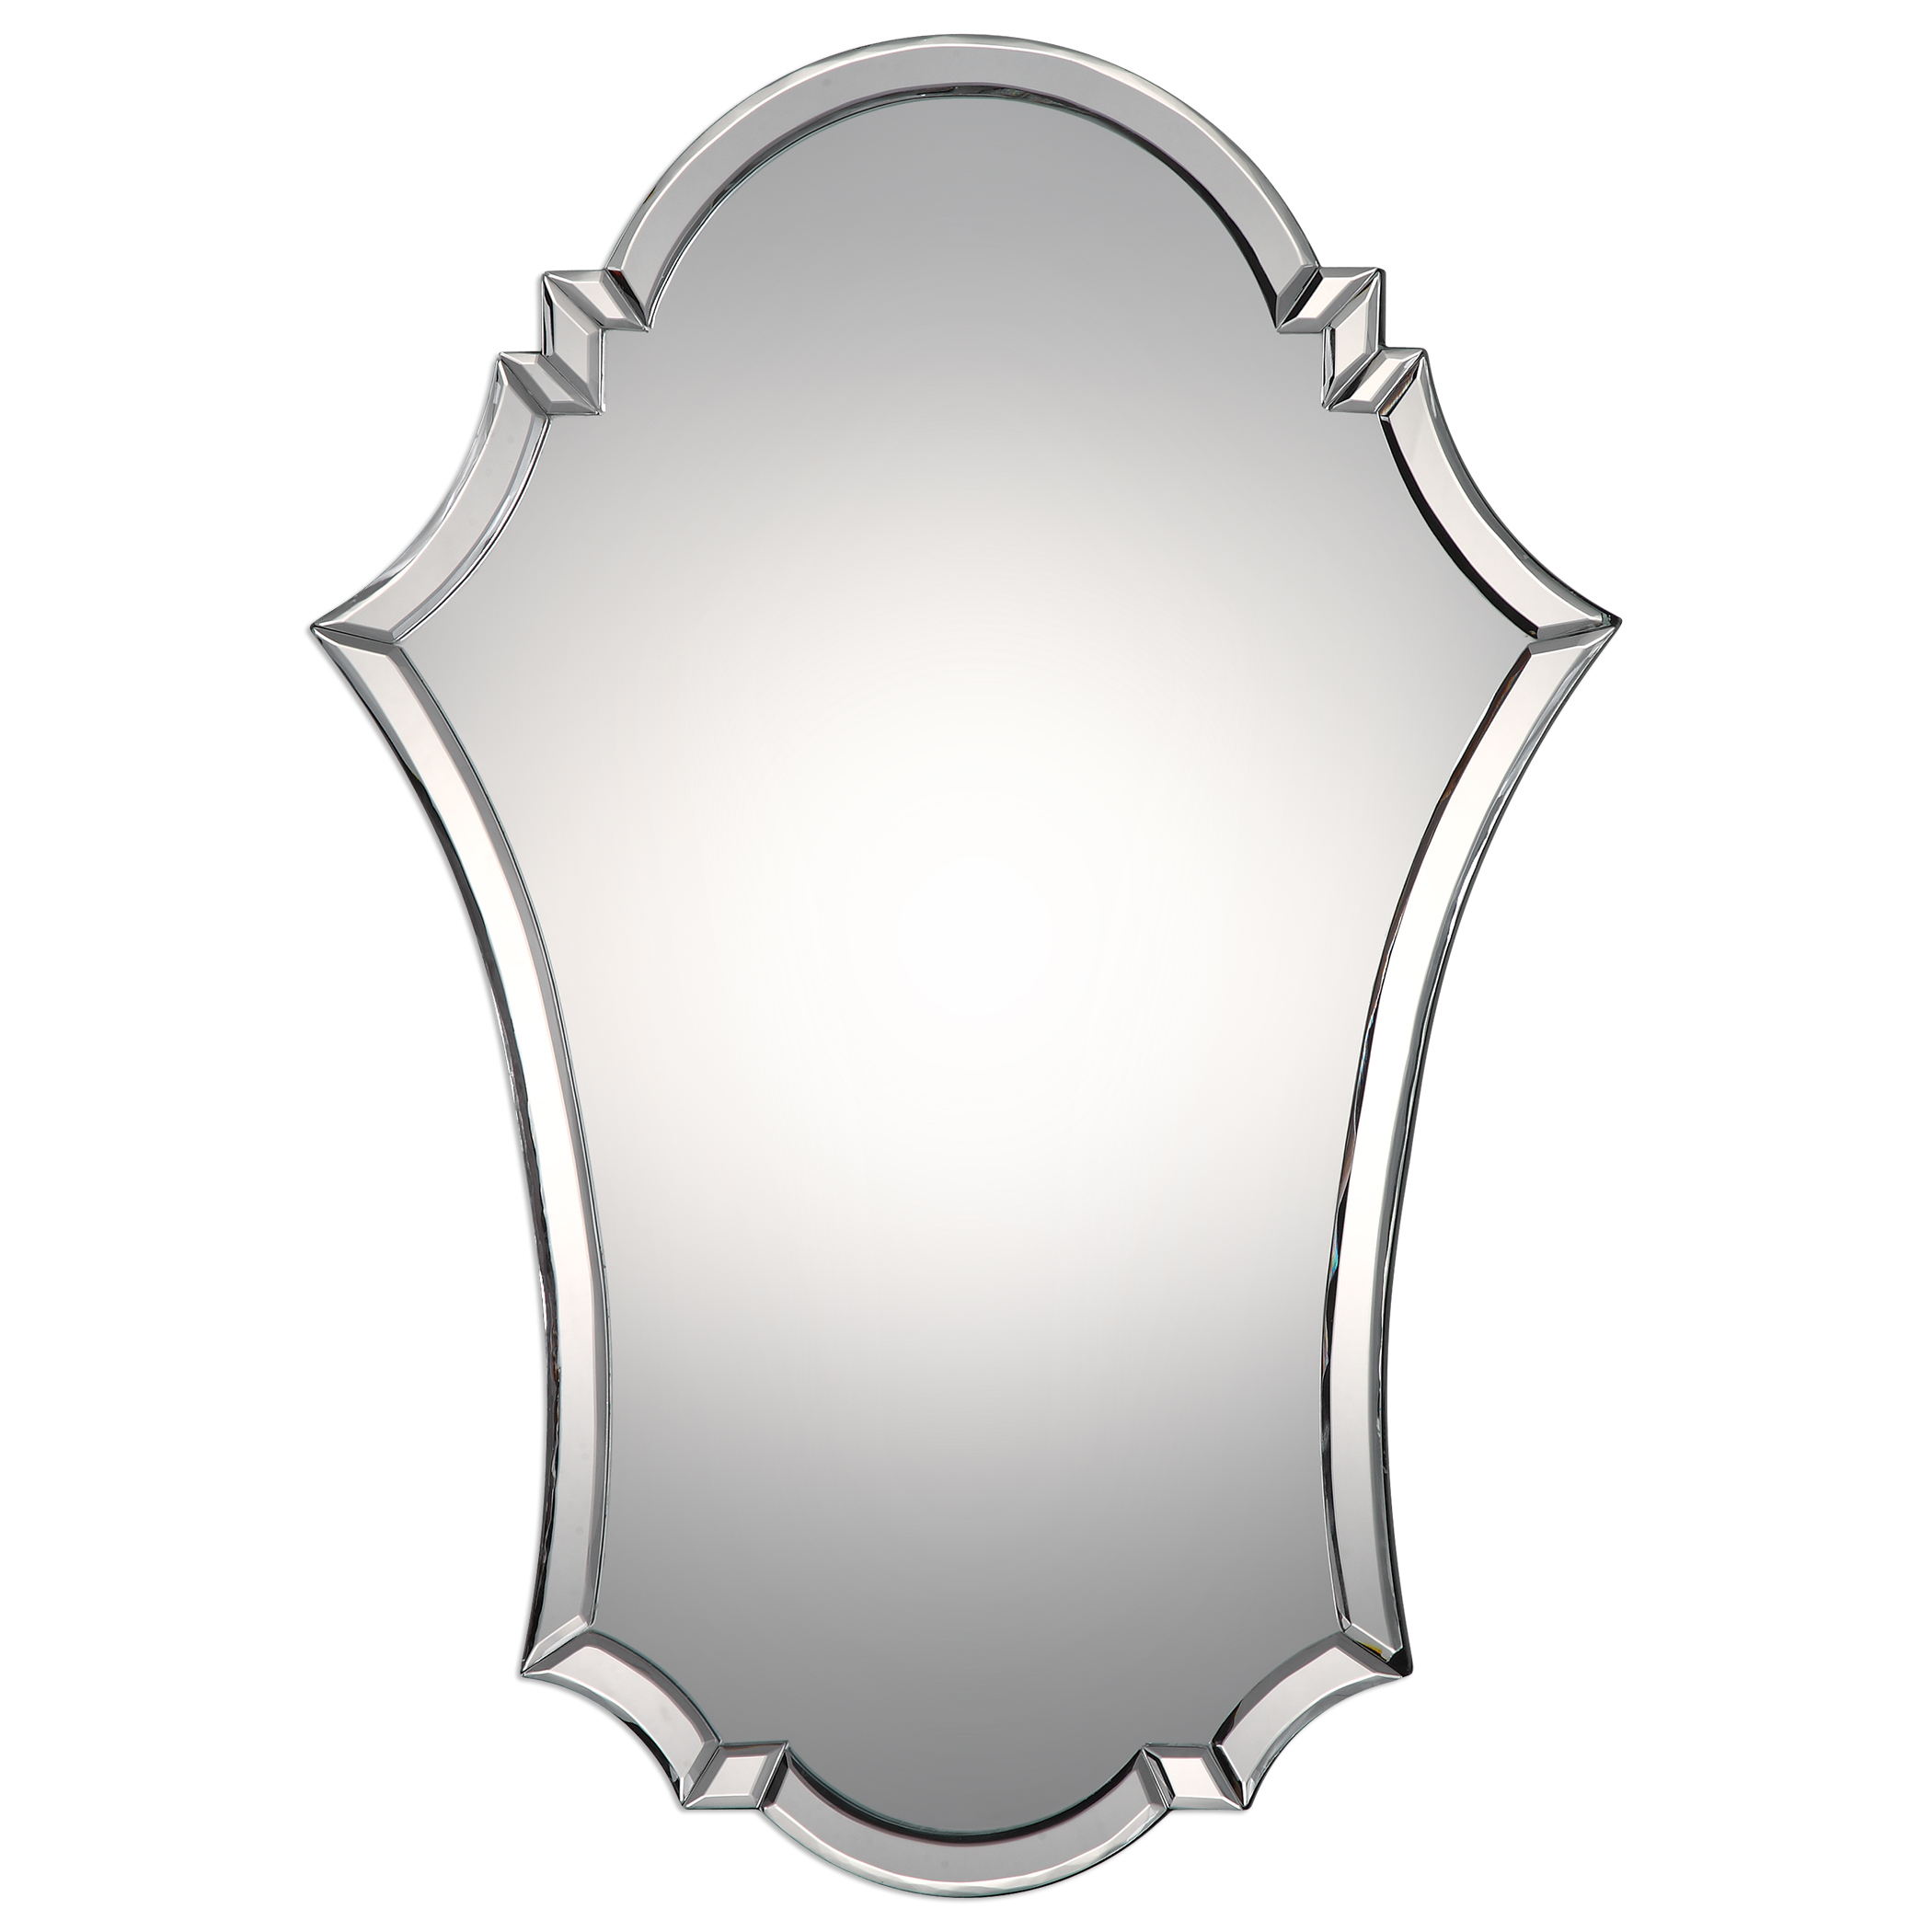 Uttermost Mirrors Tilila Modern Arch Mirror - Item Number: 09108